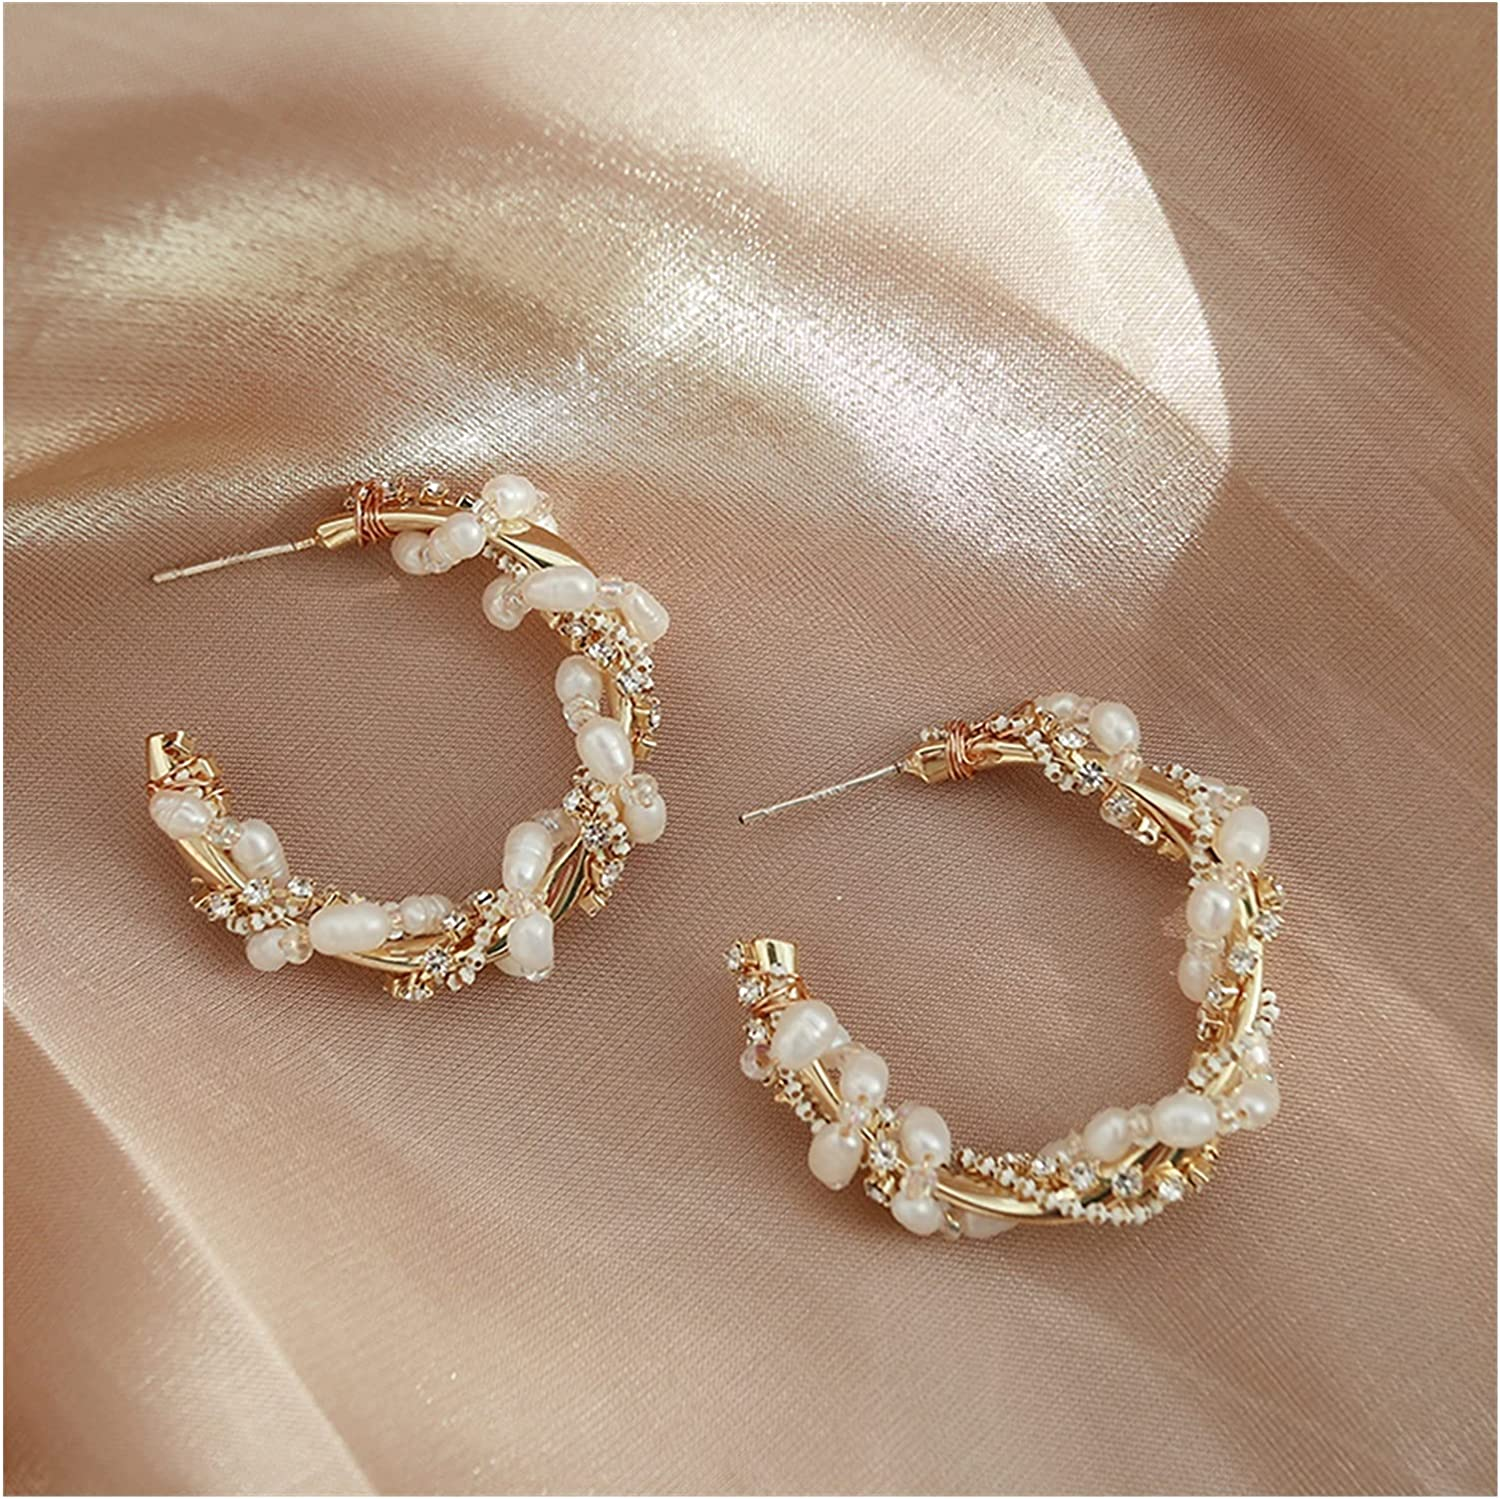 LWXFXBH Heavy Industry Challenge the lowest price of Japan ☆ Hand-Wound Fashion Rare Pearl Trendy Earrings